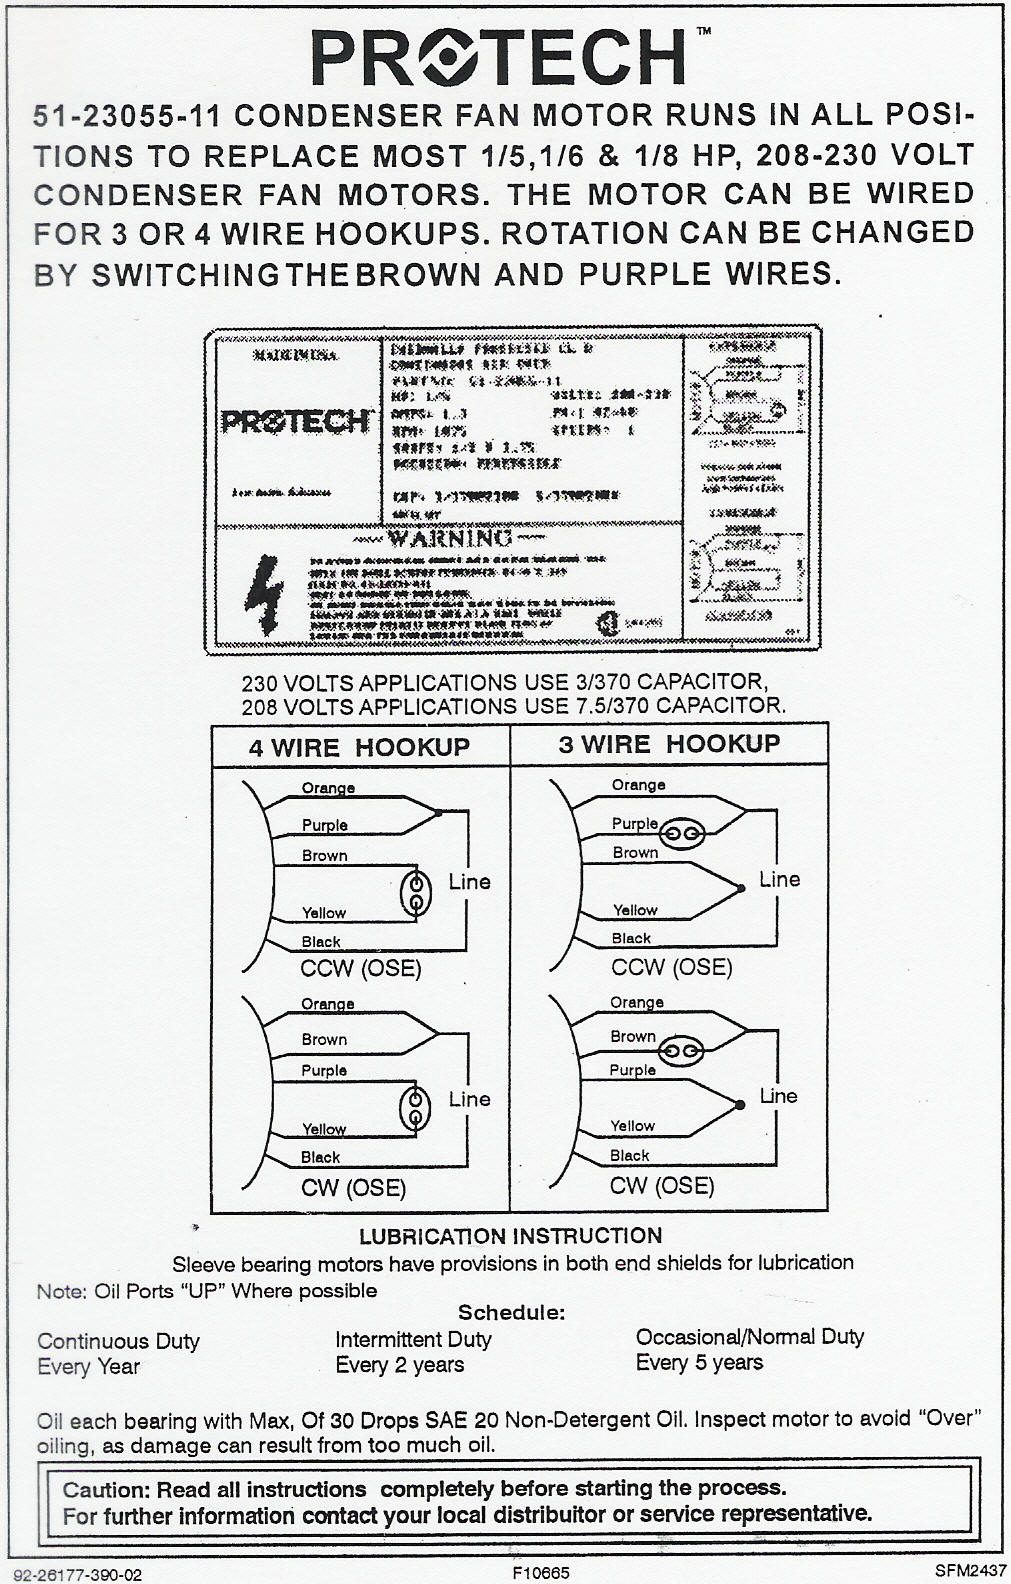 Rheem ruud condenser fan motor 51 23055 11 wiring diagram on how to read a motor wiring diagram motor control circuit tutorial EMG Wiring Diagram 5 Way To